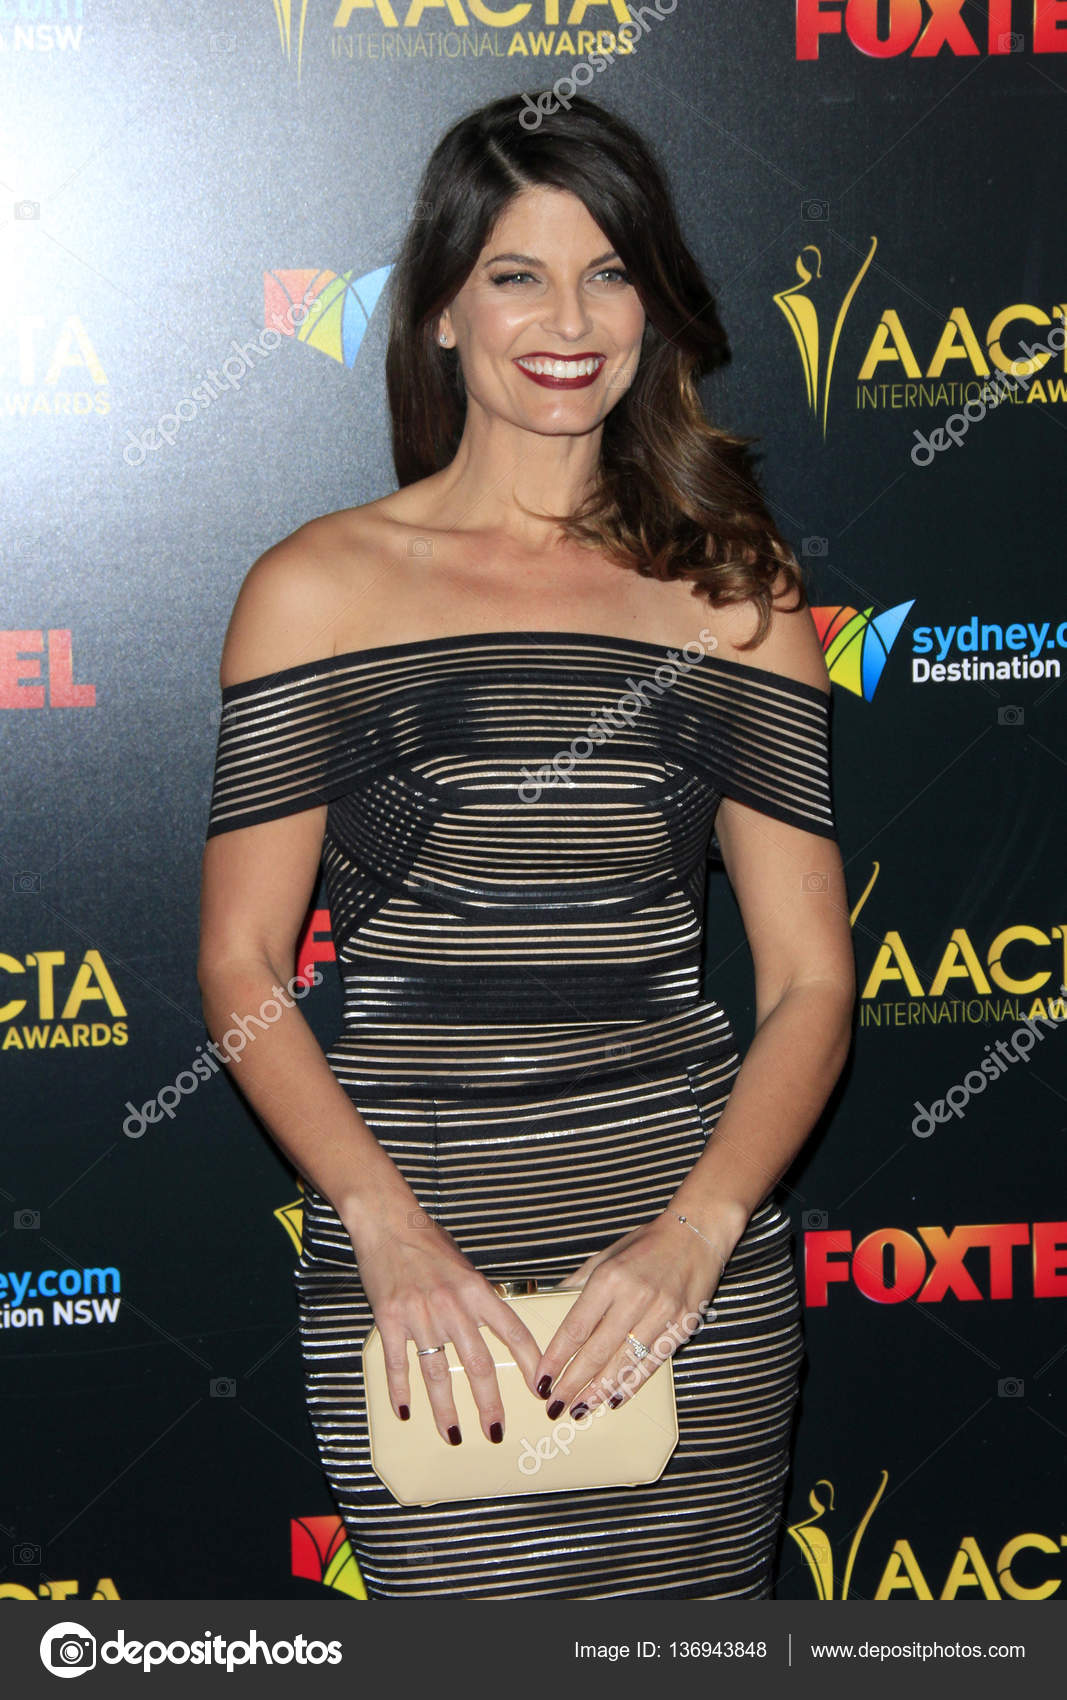 Forum on this topic: Sandy Talag (b. 1998), katie-johnson-american-actress/